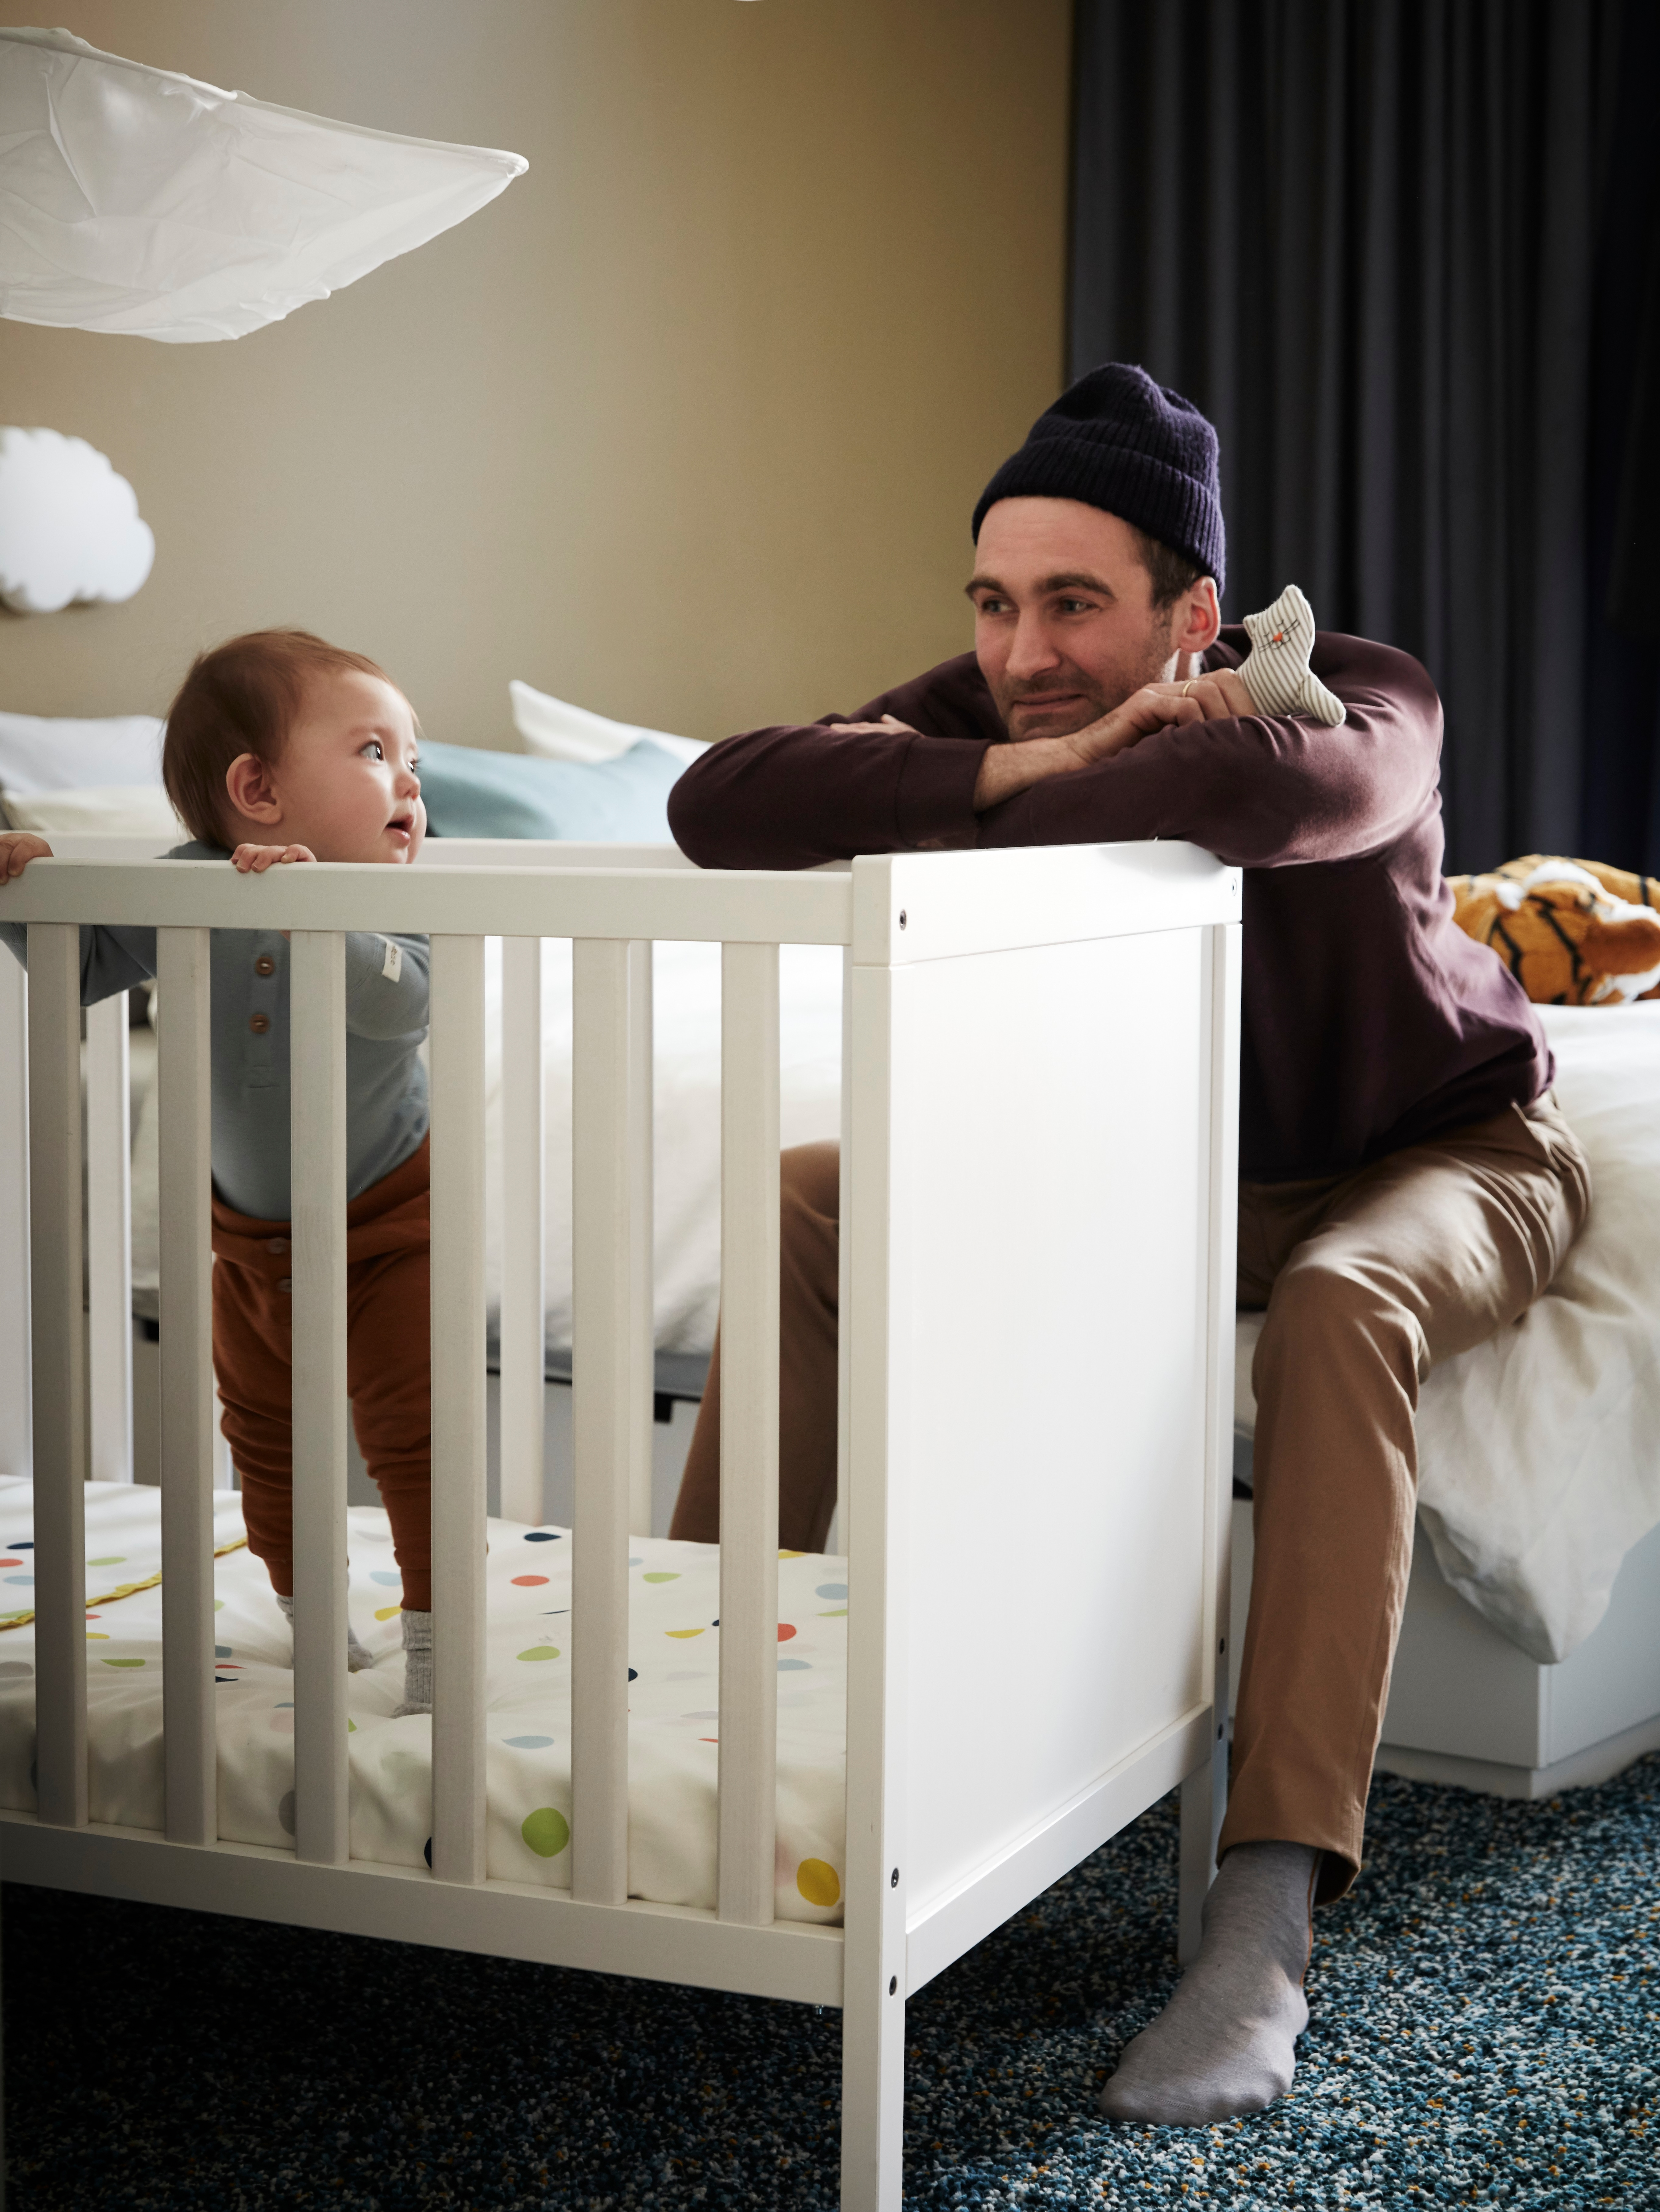 A man holding a soft toy looking at a child who is standing up in a SUNDVIK white cot.